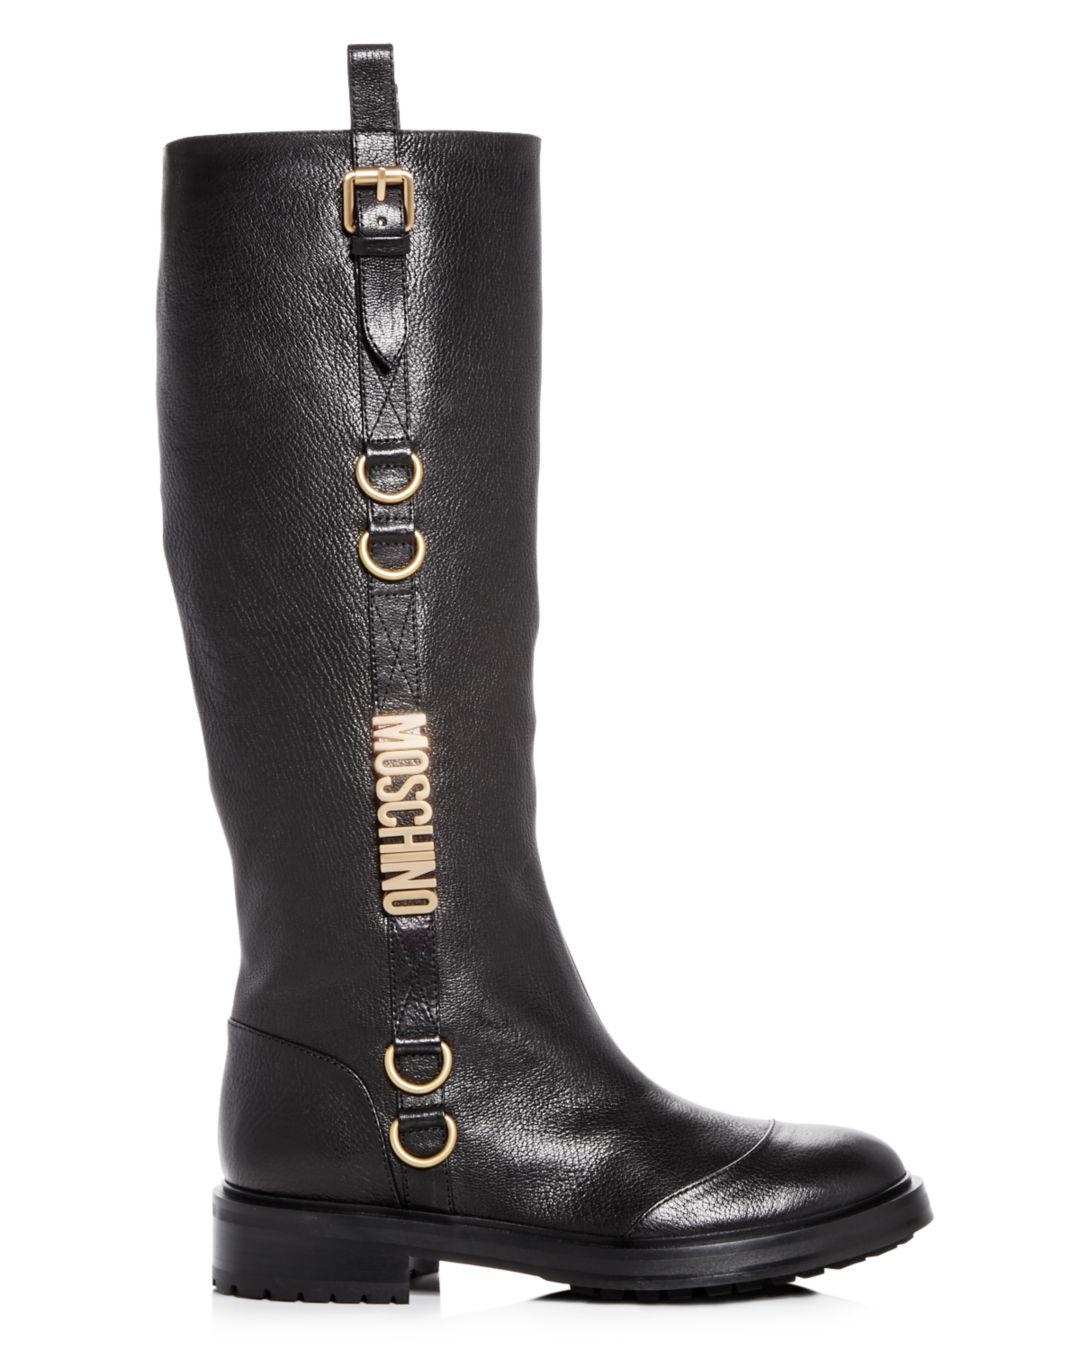 393718b6280 Lyst - Moschino Women s Logo Leather Riding Boots in Black - Save 44%